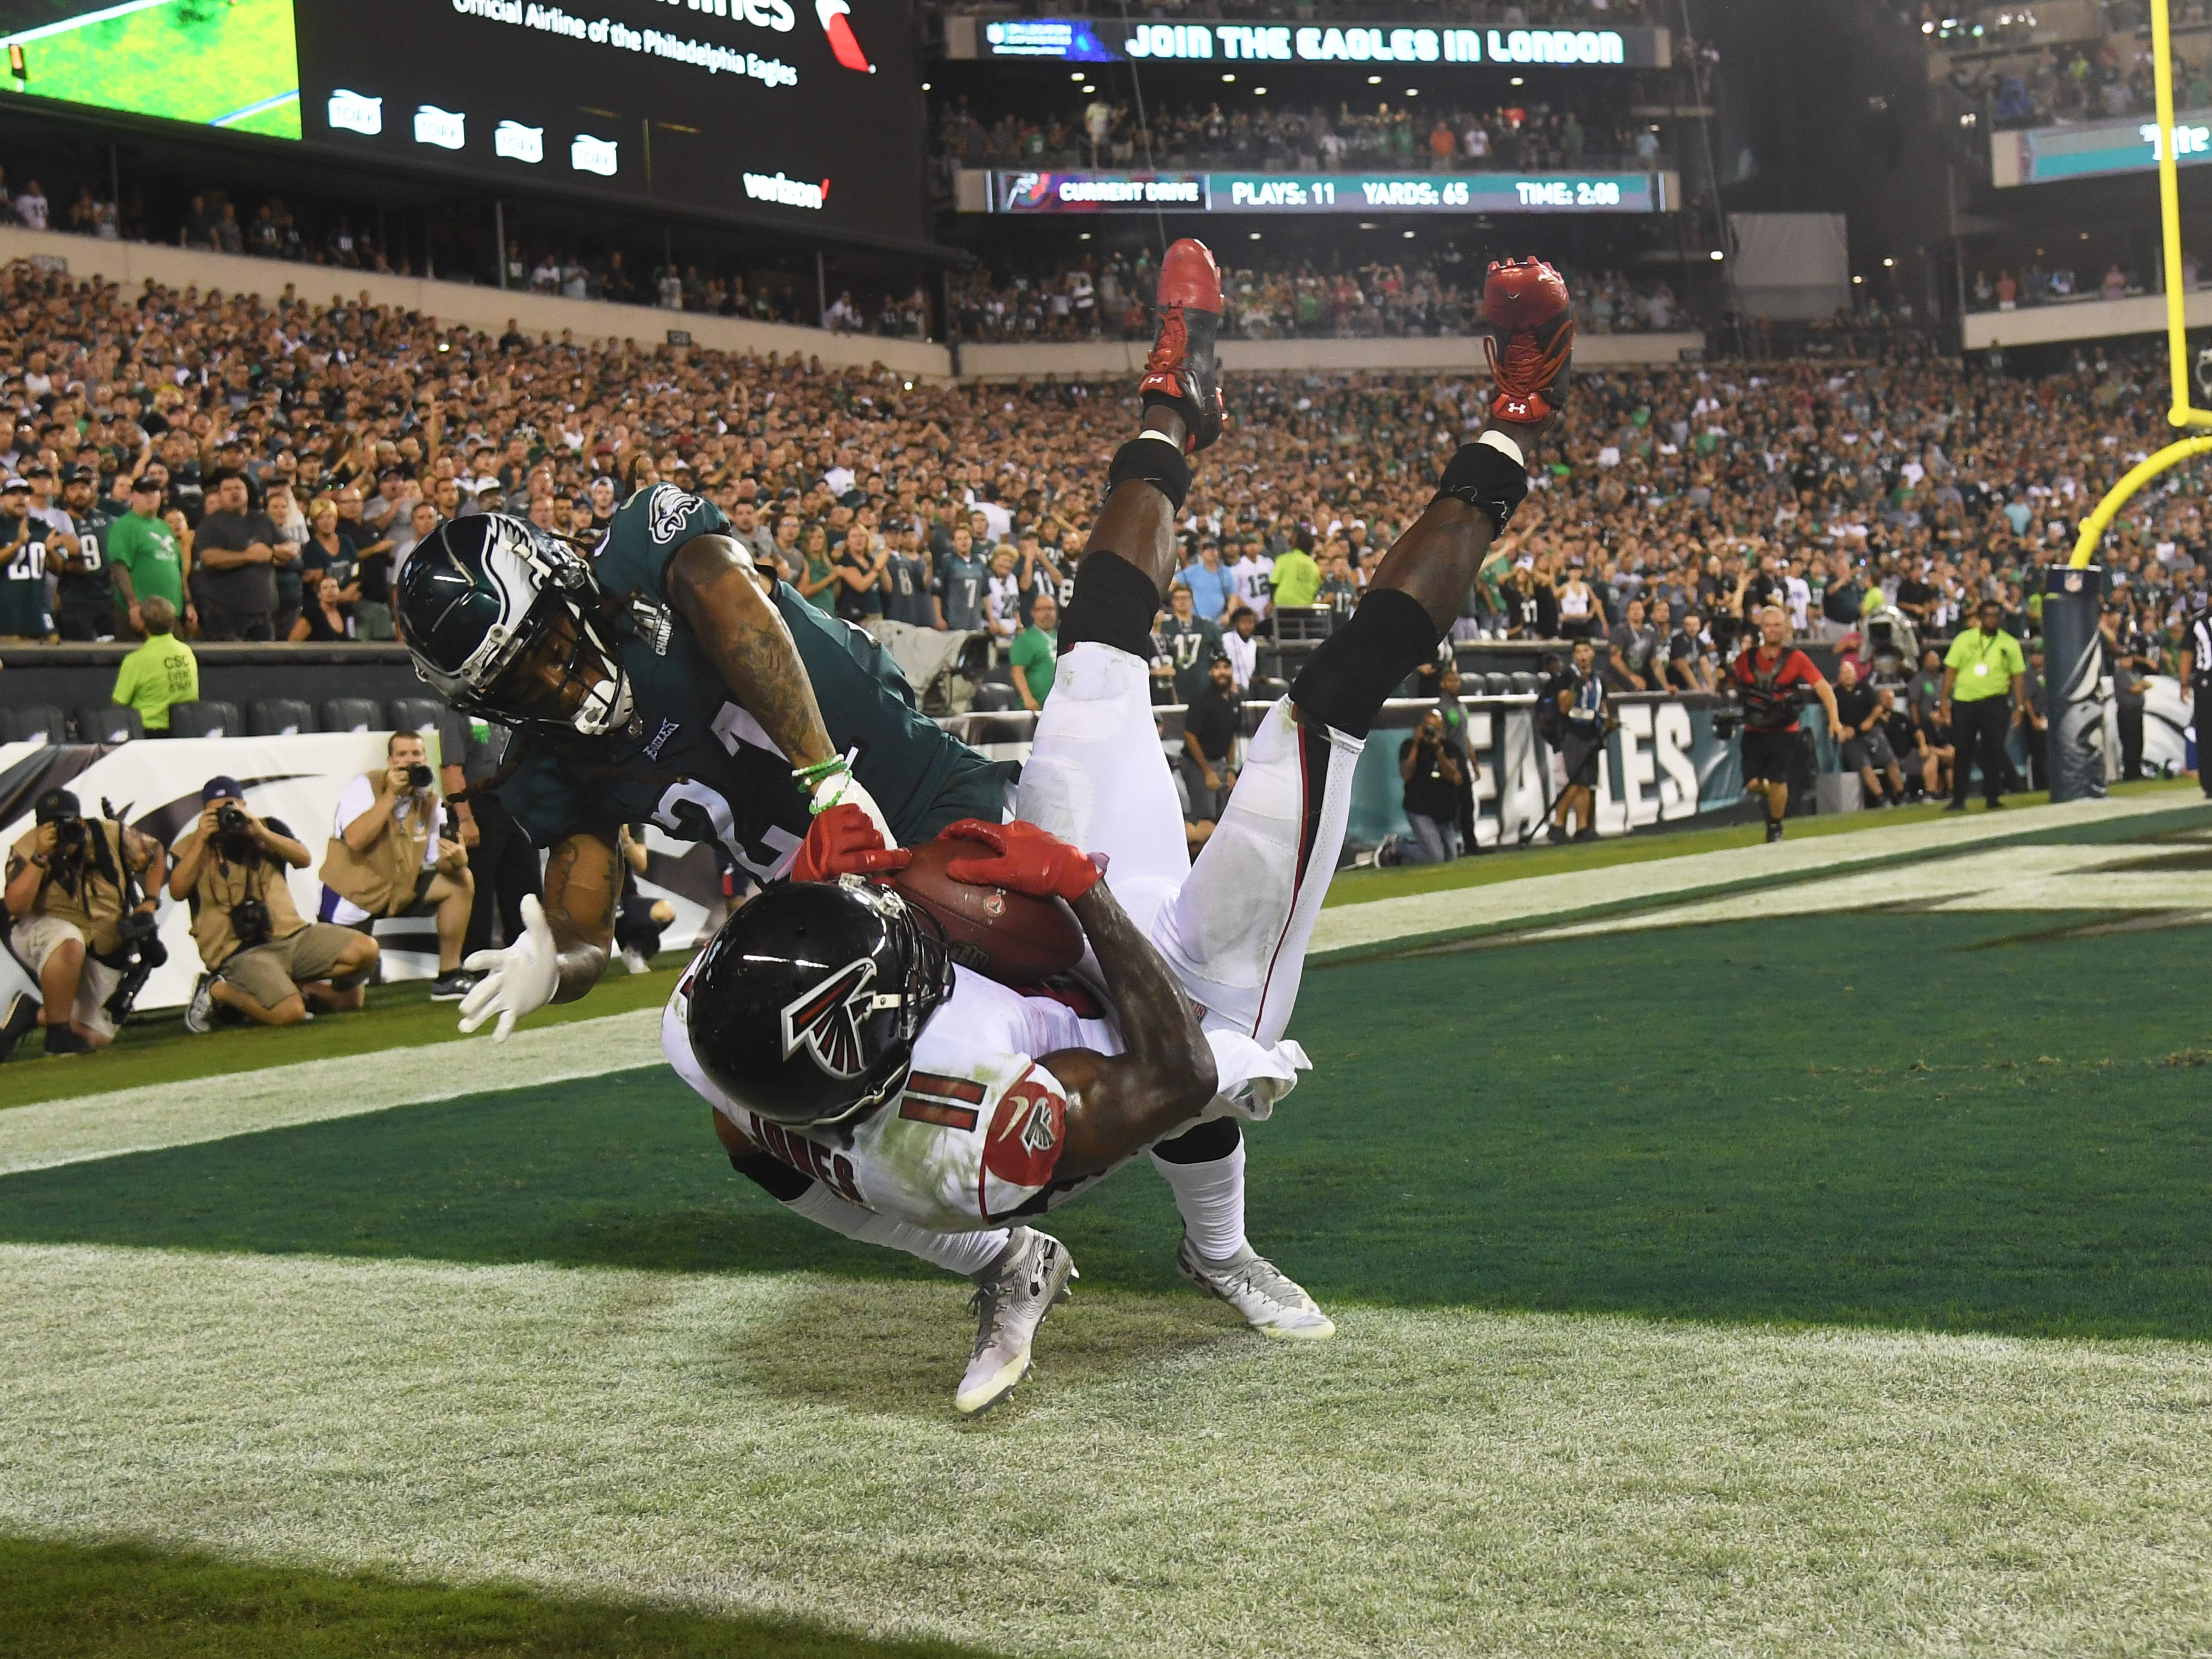 Philadelphia Eagles cornerback Ronald Darby pushes Atlanta Falcons wide receiver Julio Jones out of bounds on the final play of the Eagles' 18-12 win at Lincoln Financial Field.